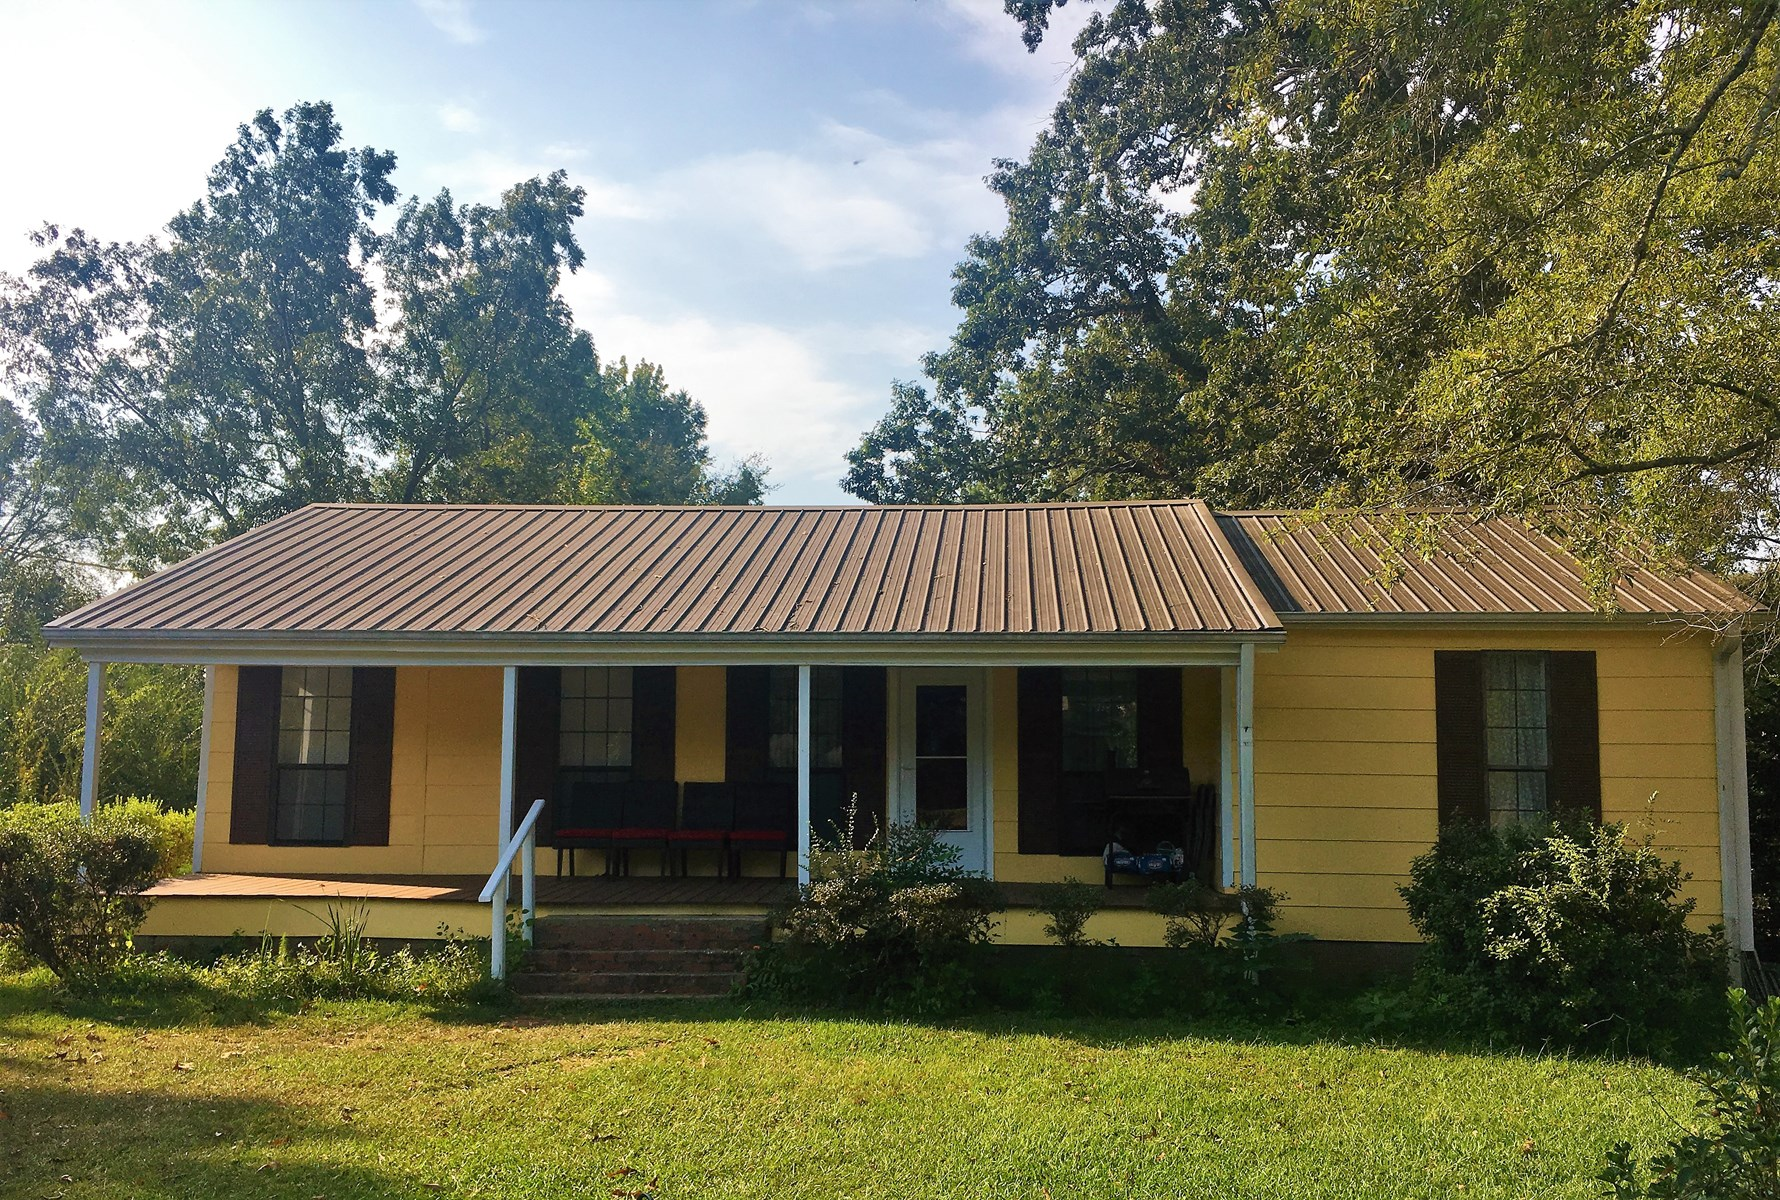 Home for Sale - 62 Quinn St, Ackerman, MS